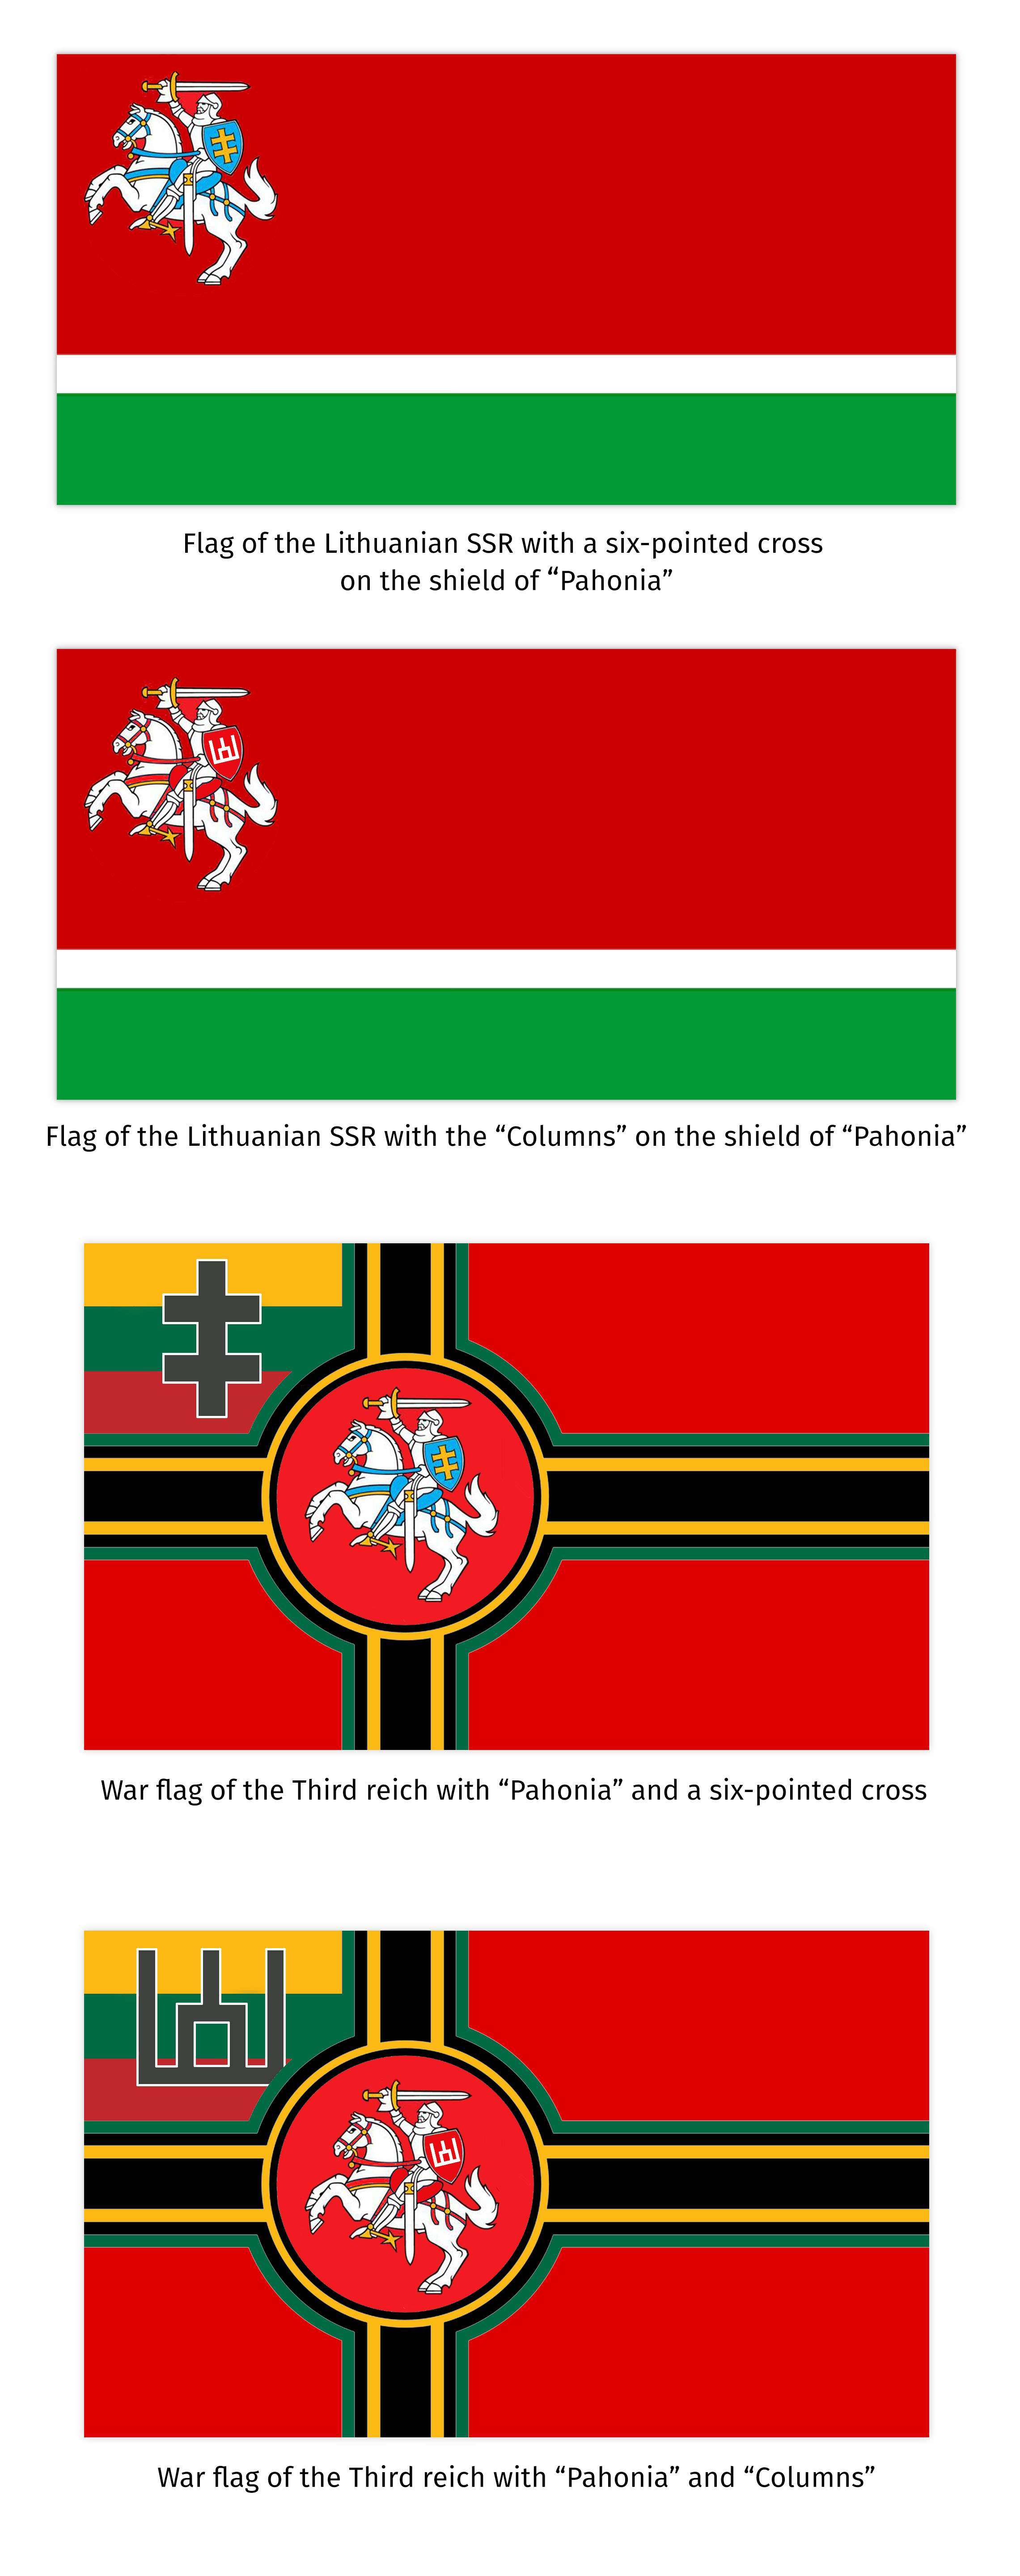 en69-flag-of-lithuania-on-the-way-to-the-formation-of-lithuanian-statehood_22